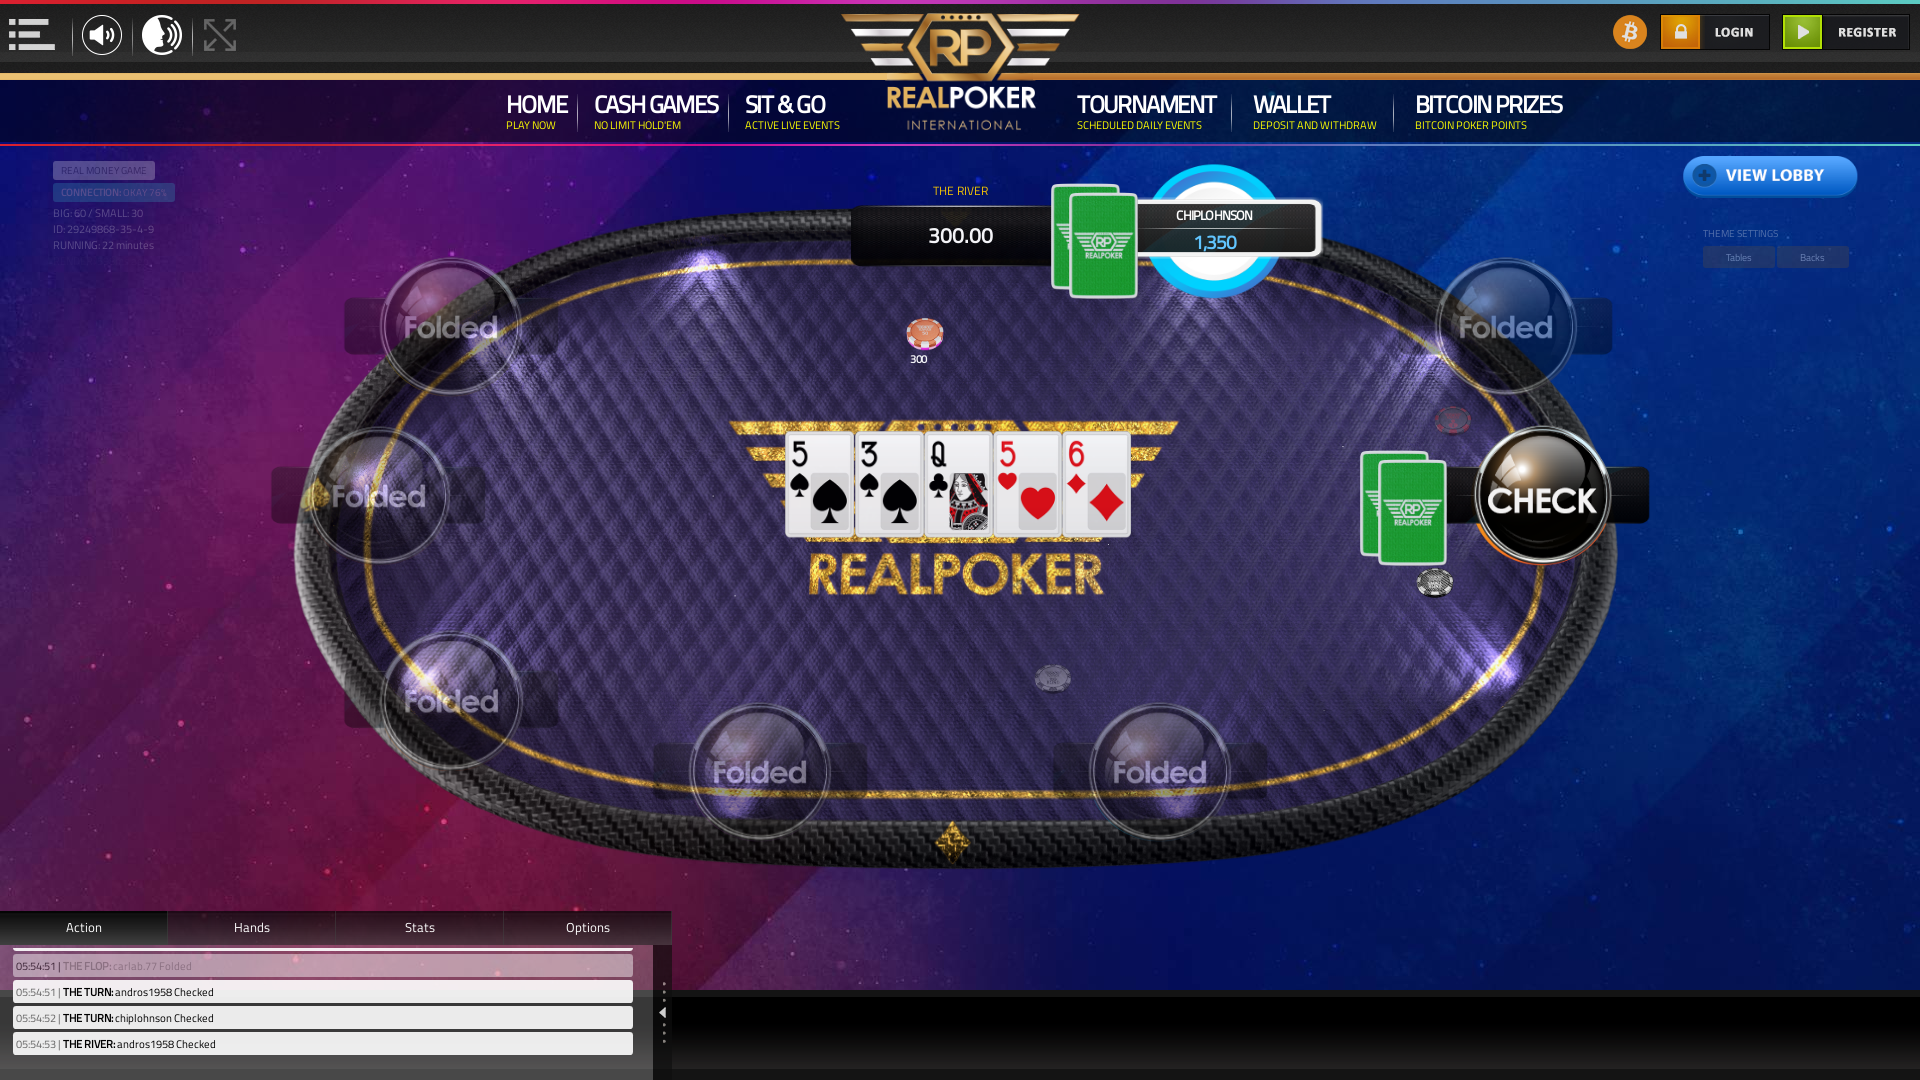 Real poker on a 10 player table in the 22nd minute of the game